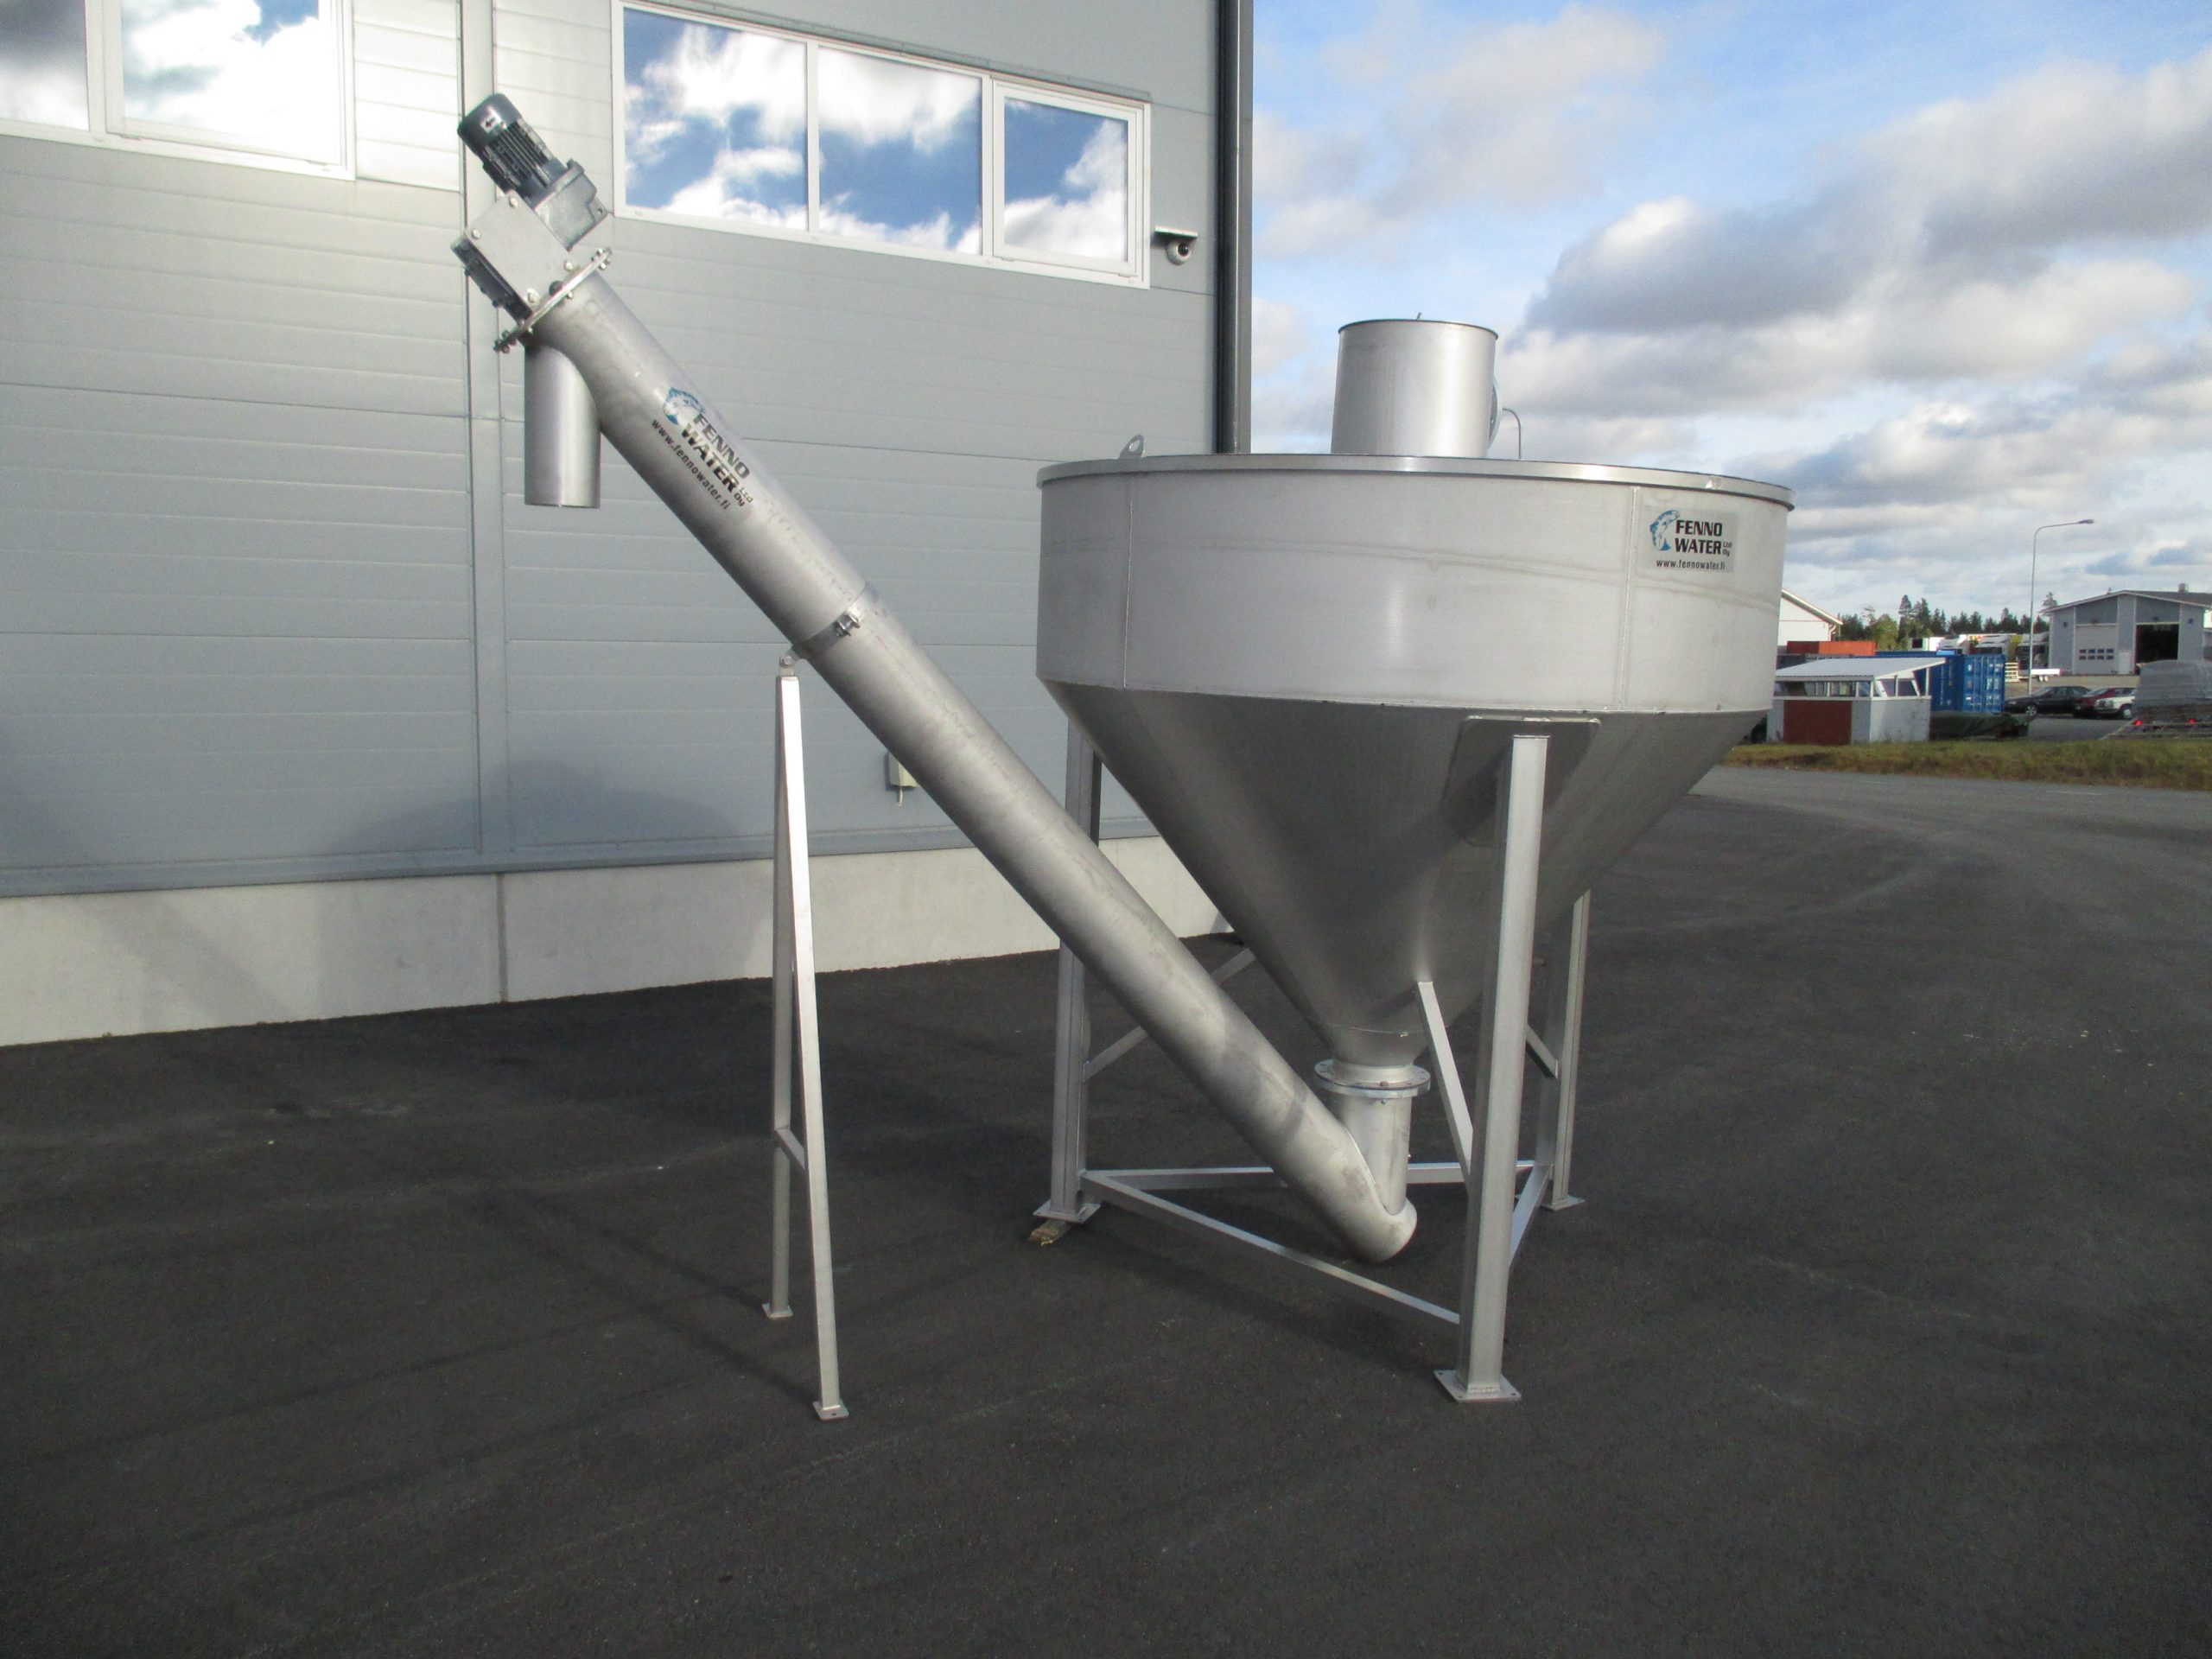 Product image: Sand separation units for round basins